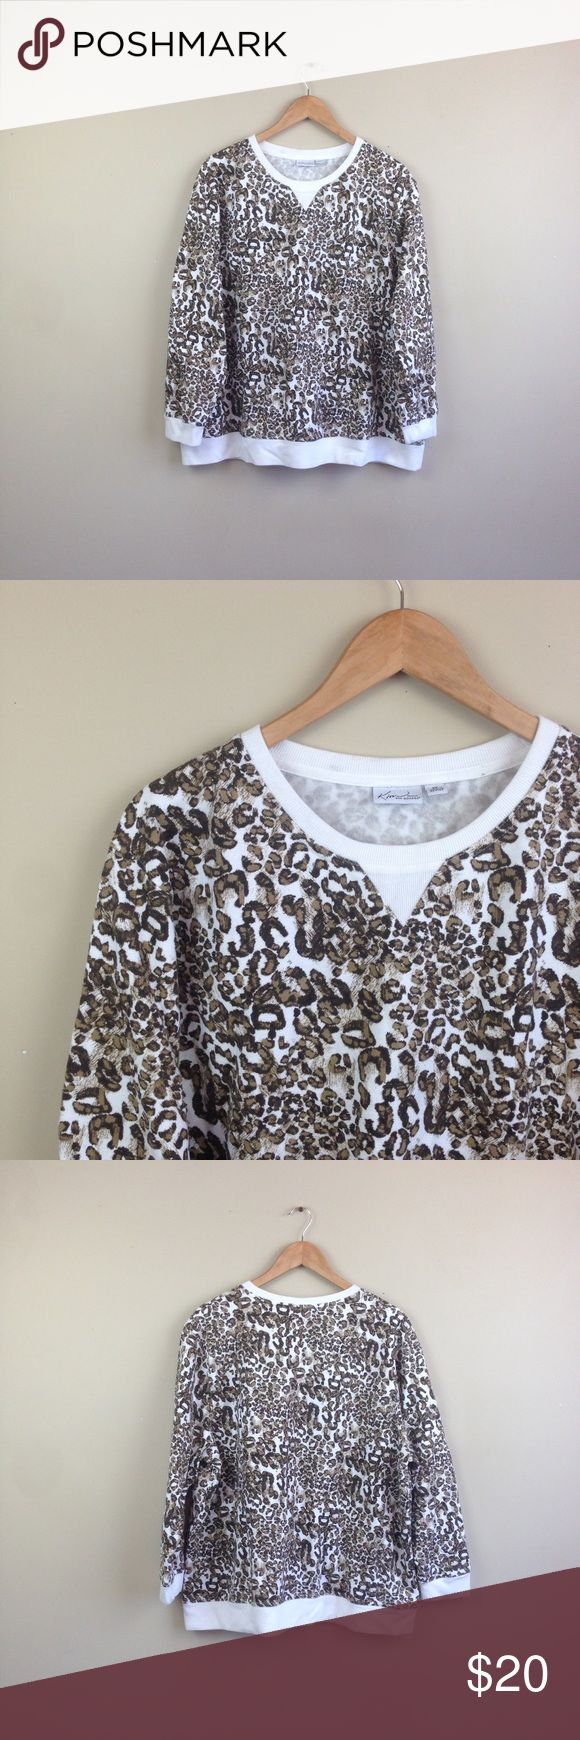 """leopard sweater sweatshirt Kim Rogers plus T129 measurementswhen flat: ~Bust (armpit to armpit) 27"""" ~length (shoulder down side) 27""""  size  2X   PLEASE CONTACT ME with any questions orconcerns beforeor after a purchase! i am here to help! :) Kim Rogers Sweaters Crew & Scoop Necks"""